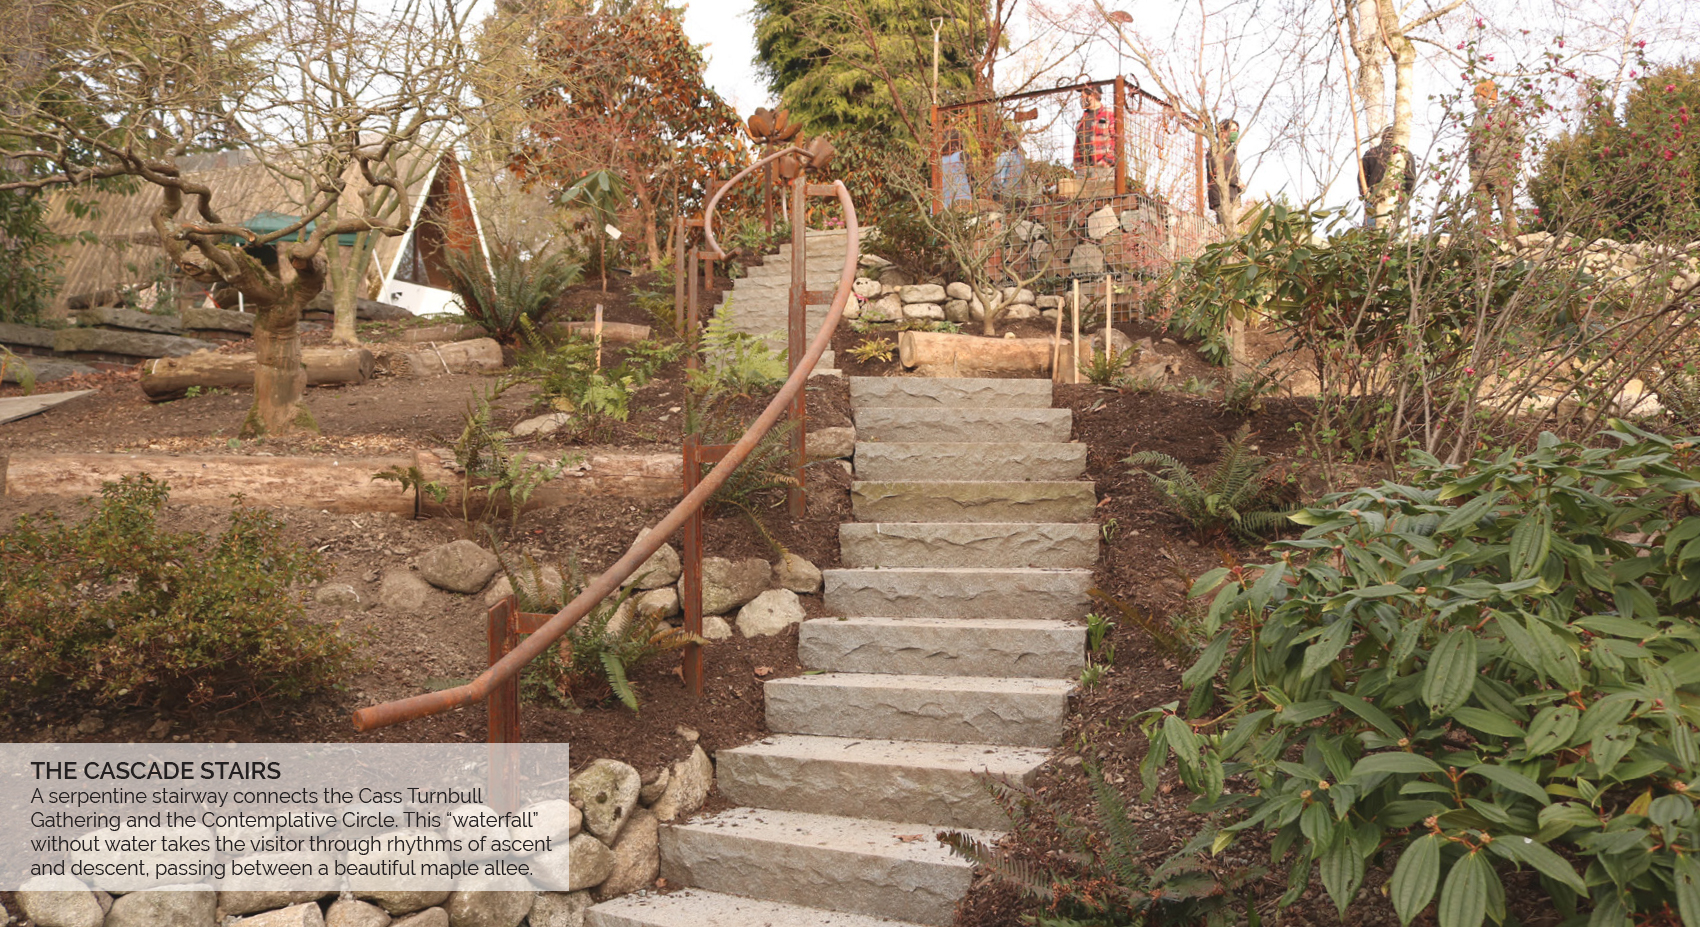 The Cascade Stairs